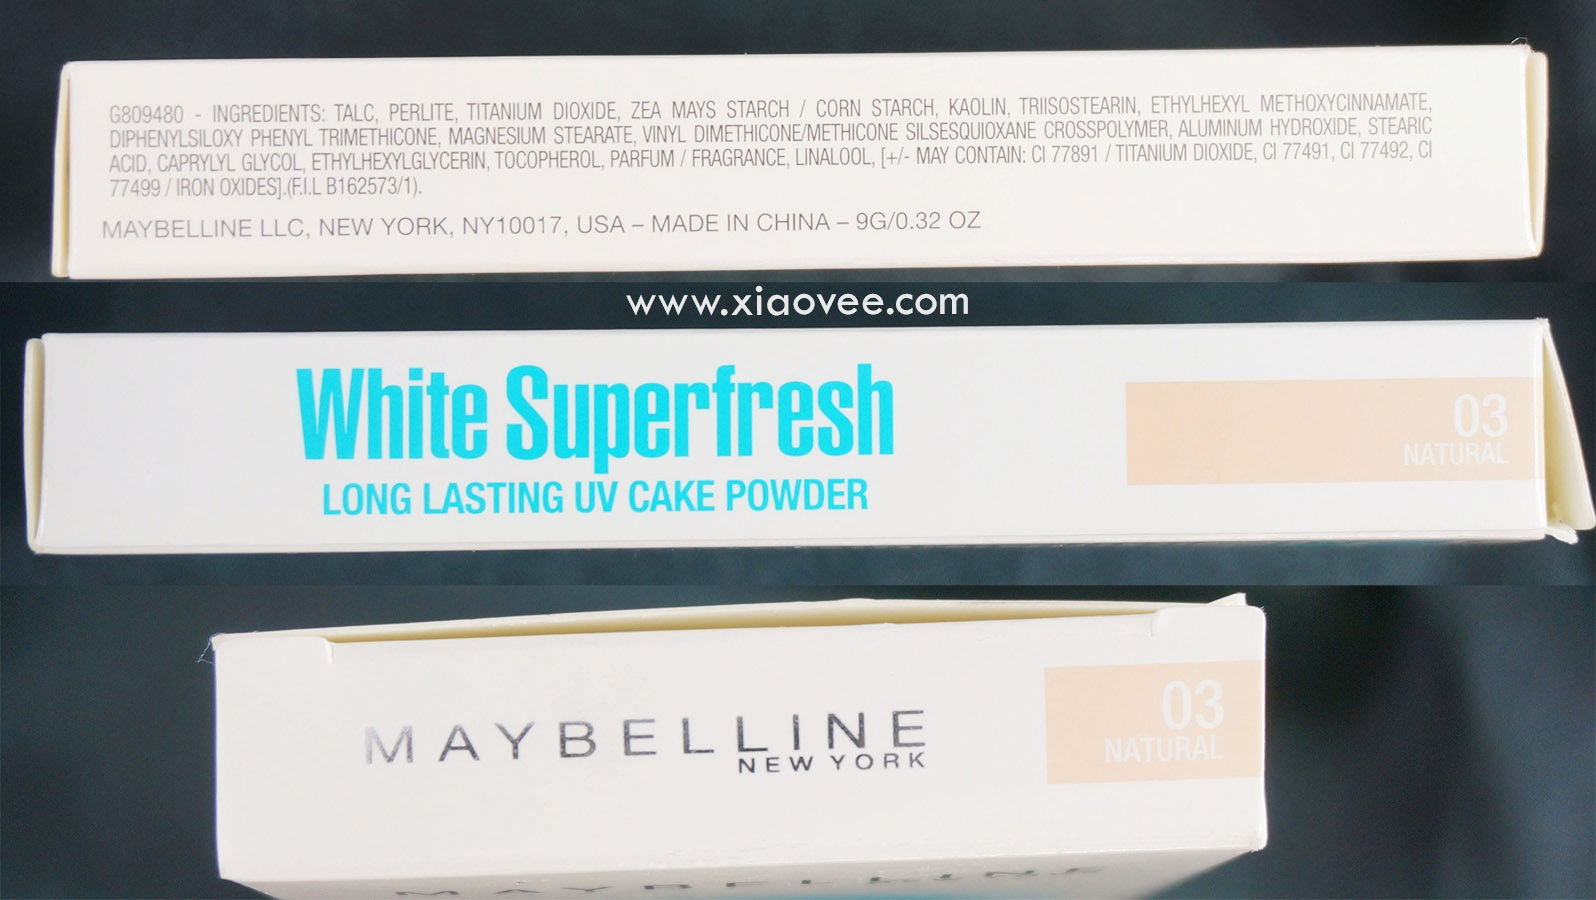 komposisi maybelline white superfresh